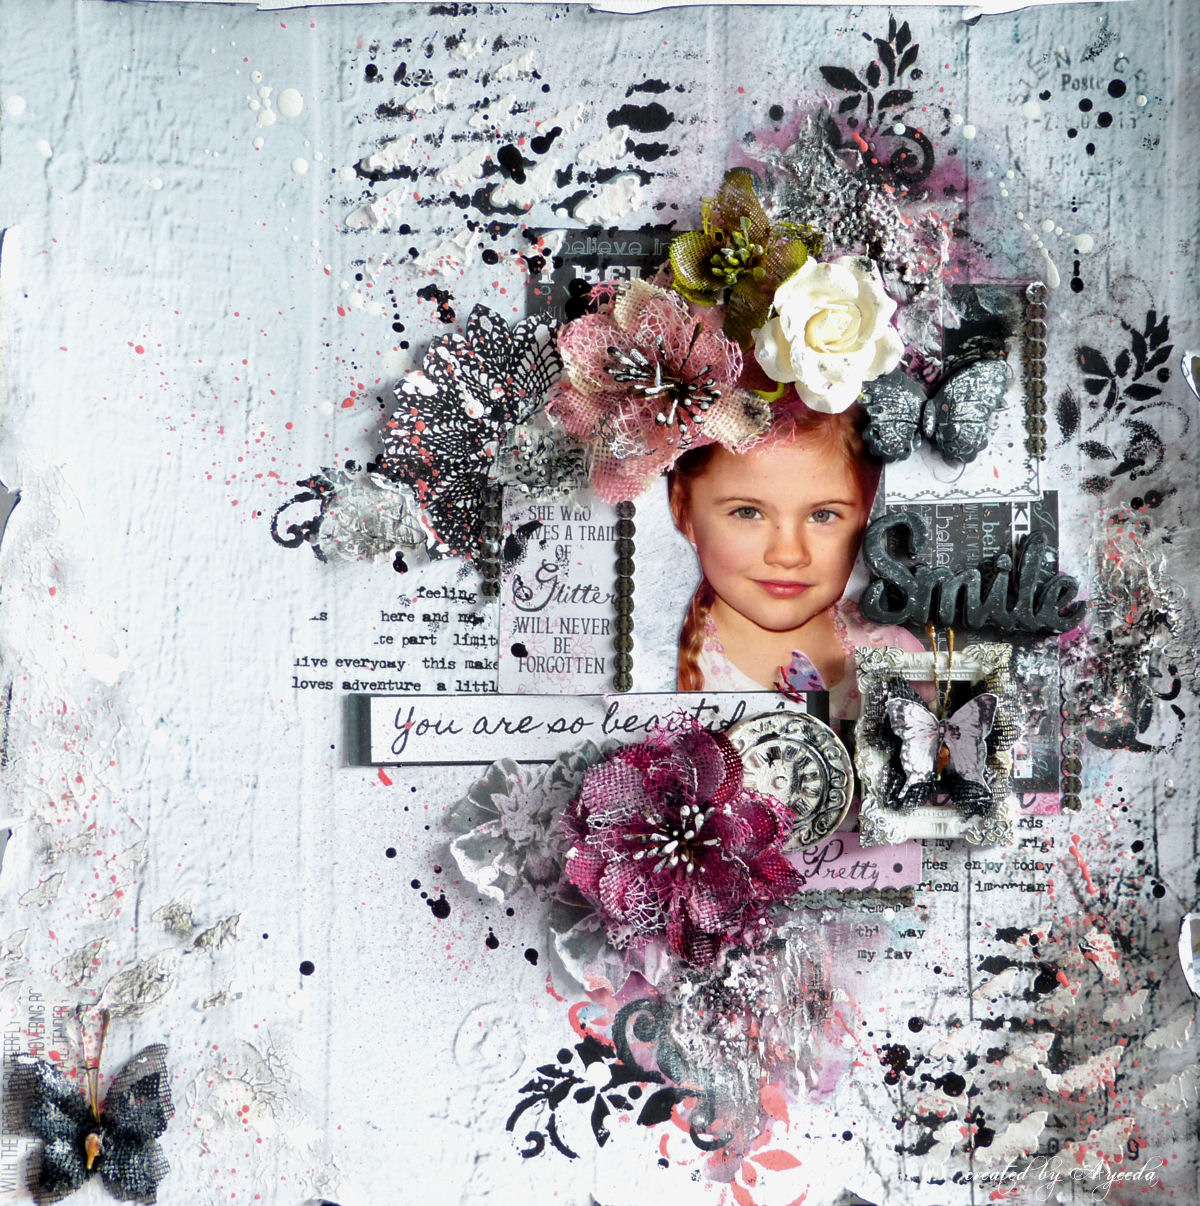 http://13pasji.blogspot.com/2014/07/smile-mixed-media-layout-and-video.html